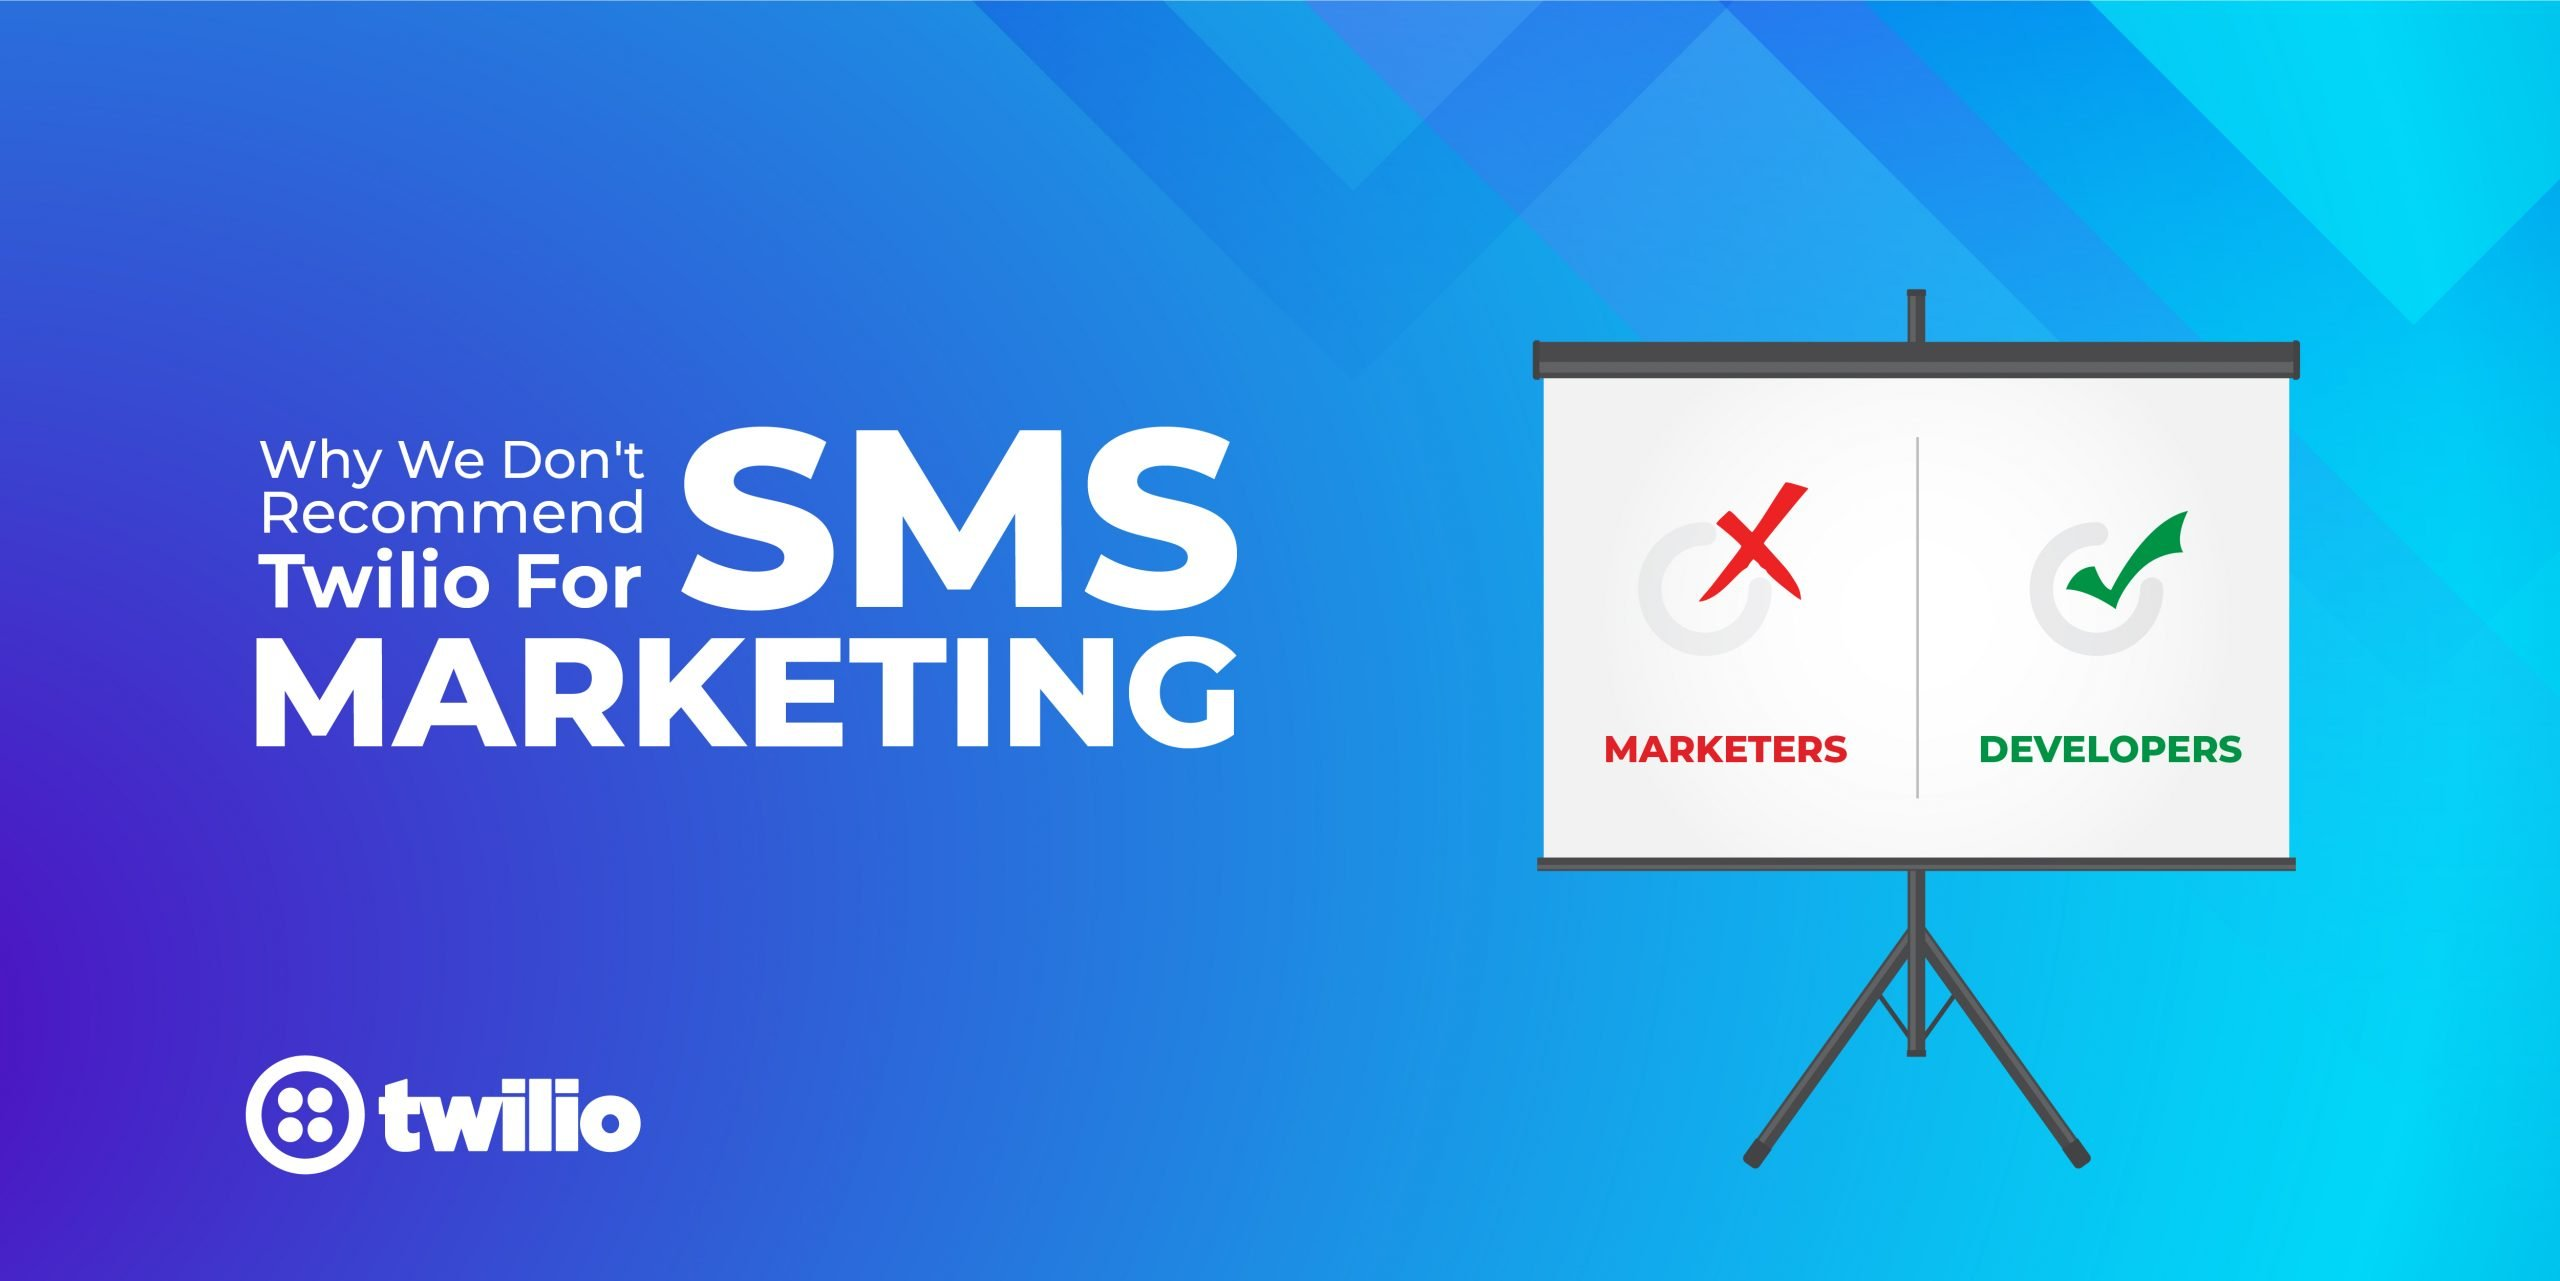 Why We Don't Recommend Twilio for SMS Marketing